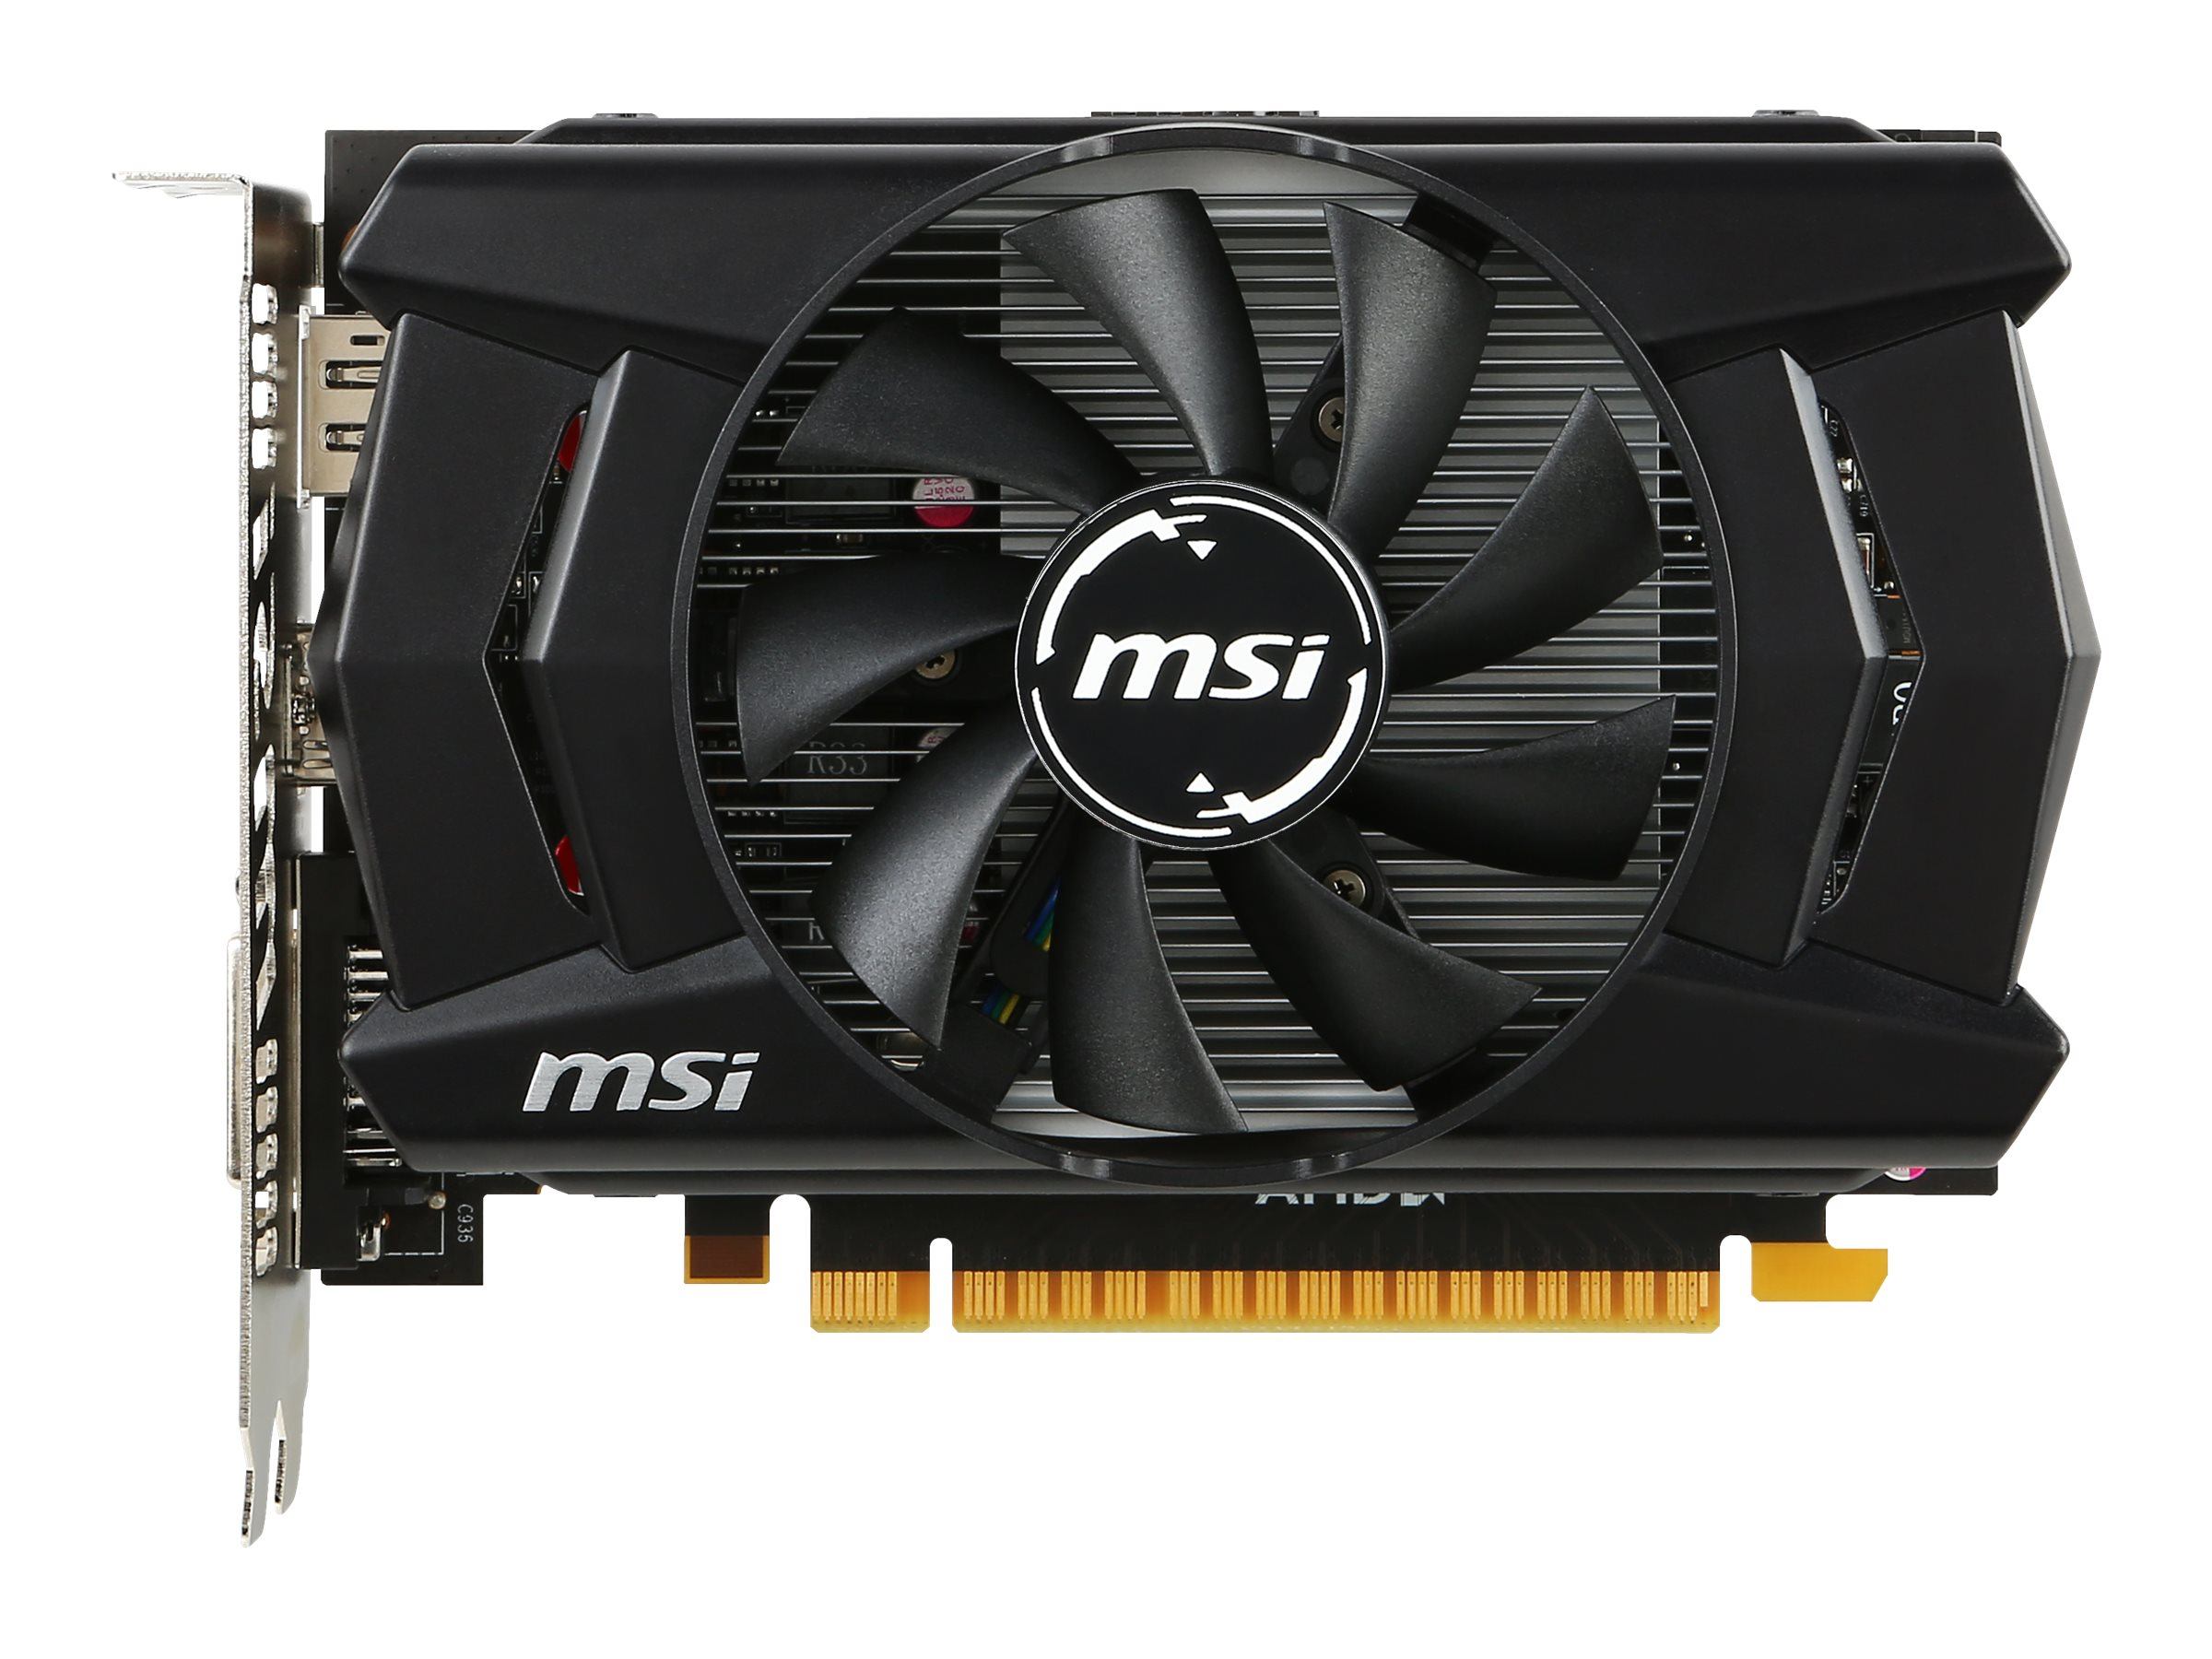 Microstar Radeon R7 360 PCIe Overclocked Graphics Card, 2GB GDDR5, R7 360 2GD5 OC, 23203257, Graphics/Video Accelerators